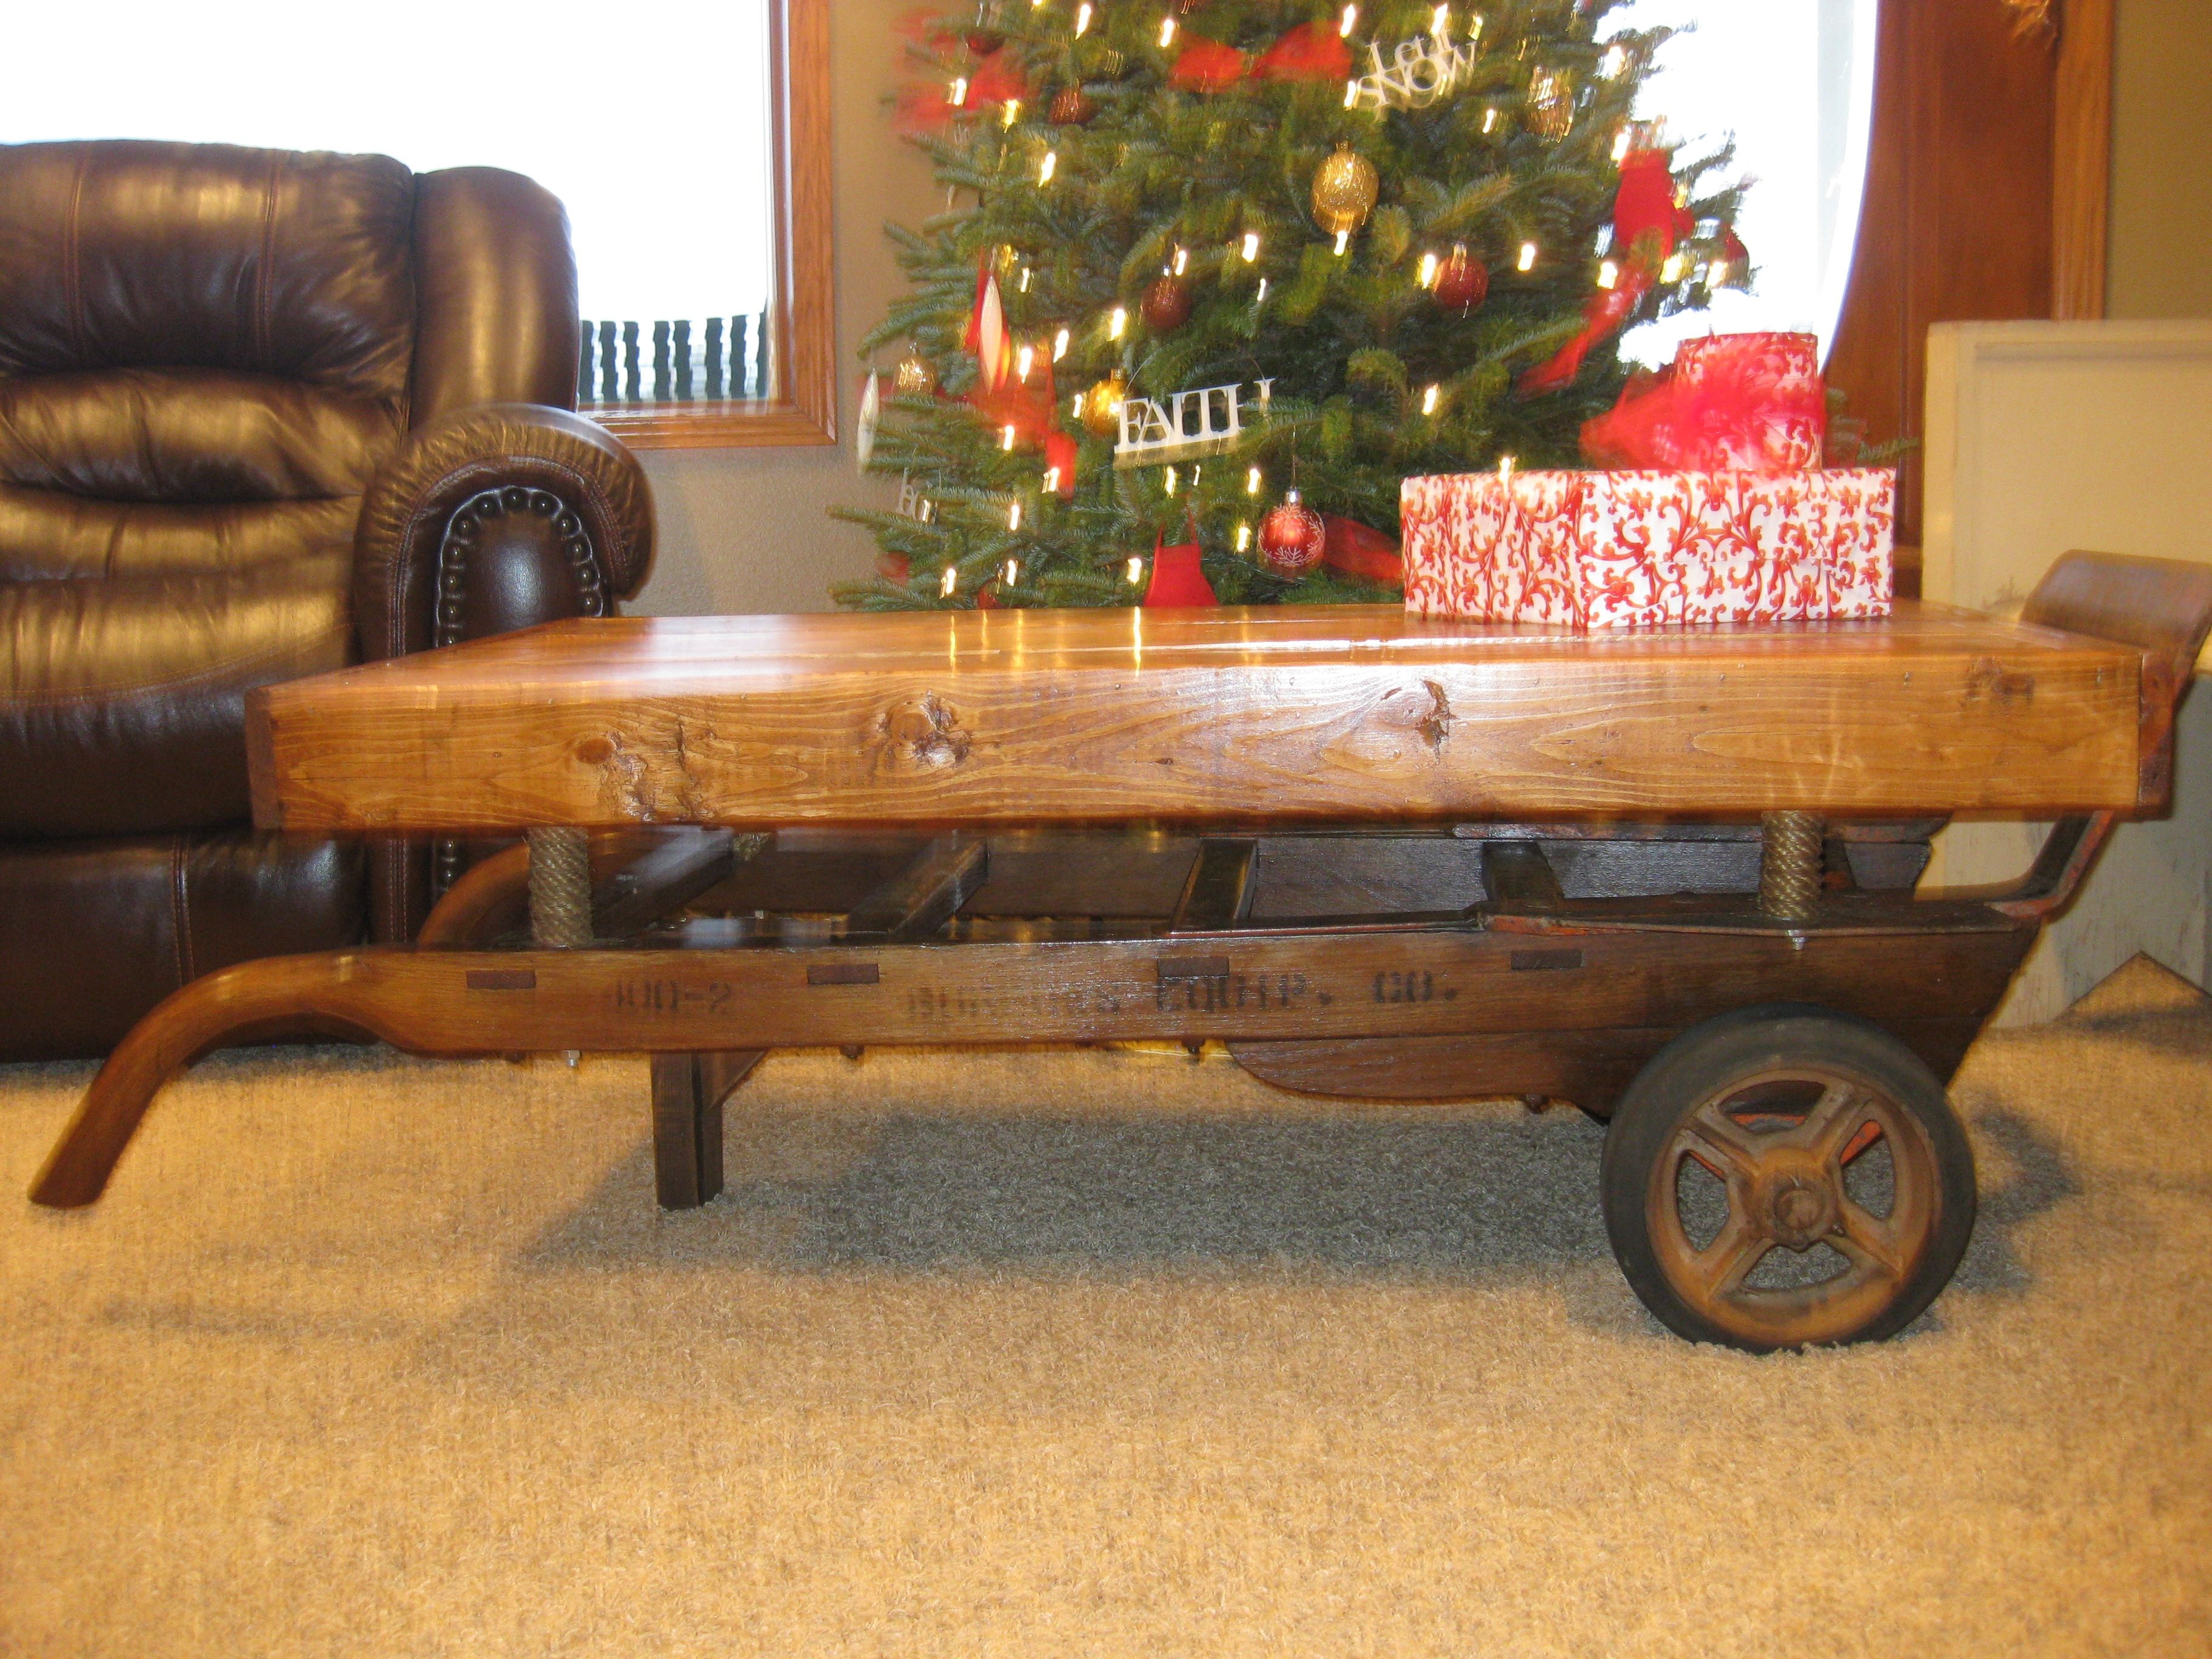 My parents old 2 wheel feed cart turned into a coffee table using